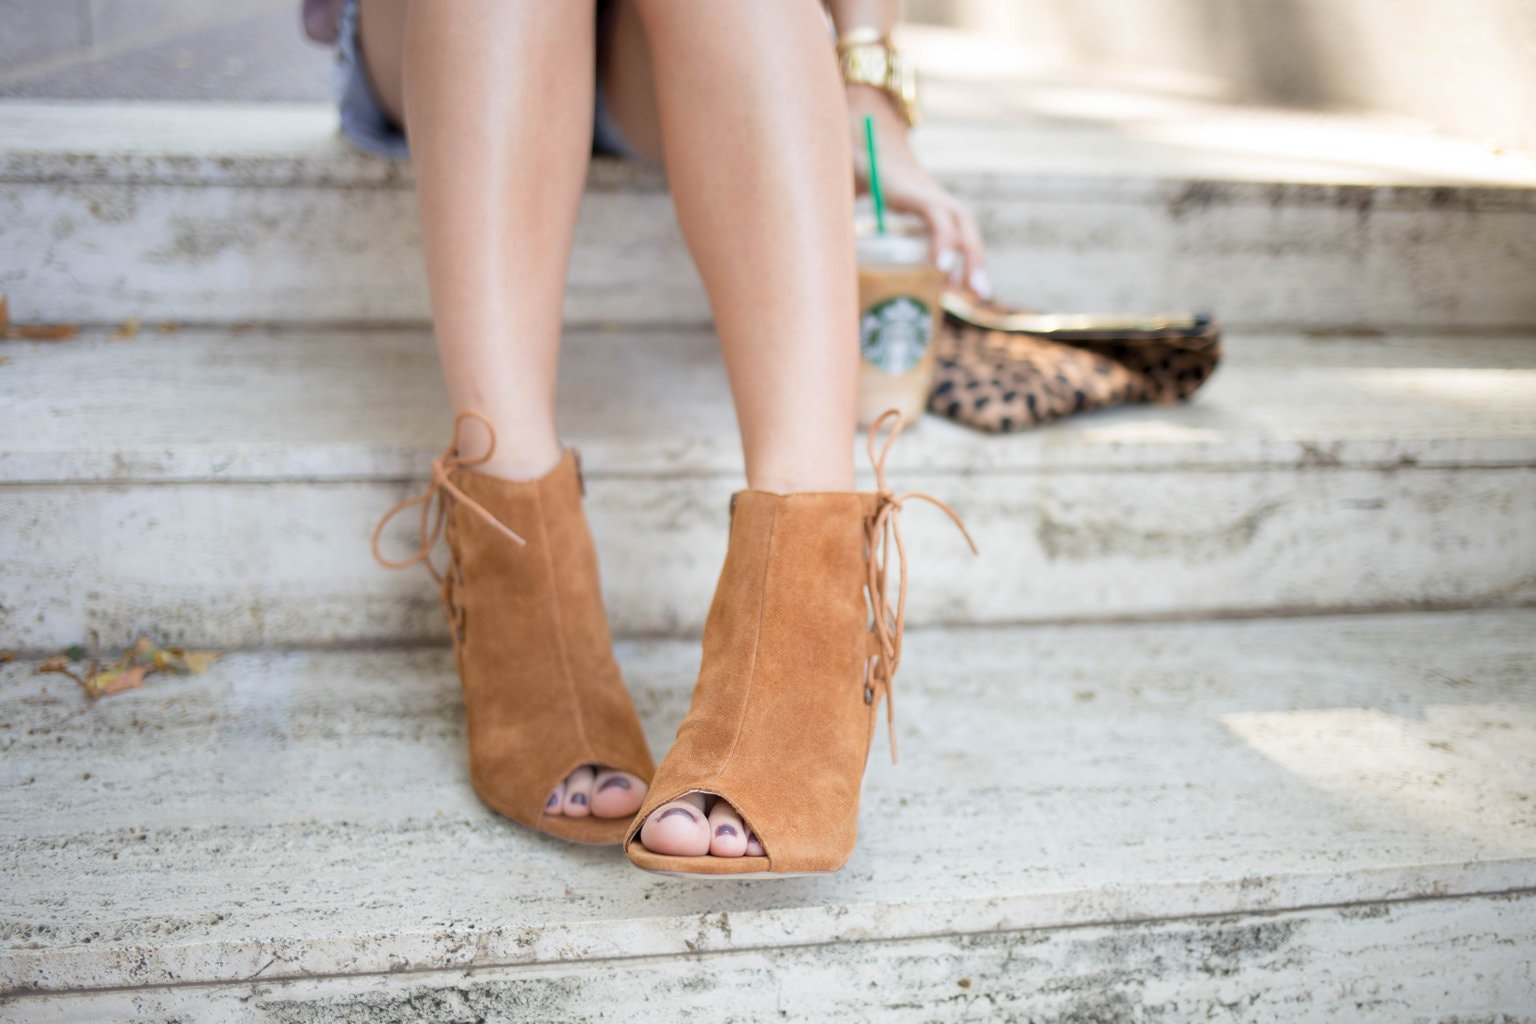 View More: http://madisonkatlinphotography.pass.us/kmoutfits